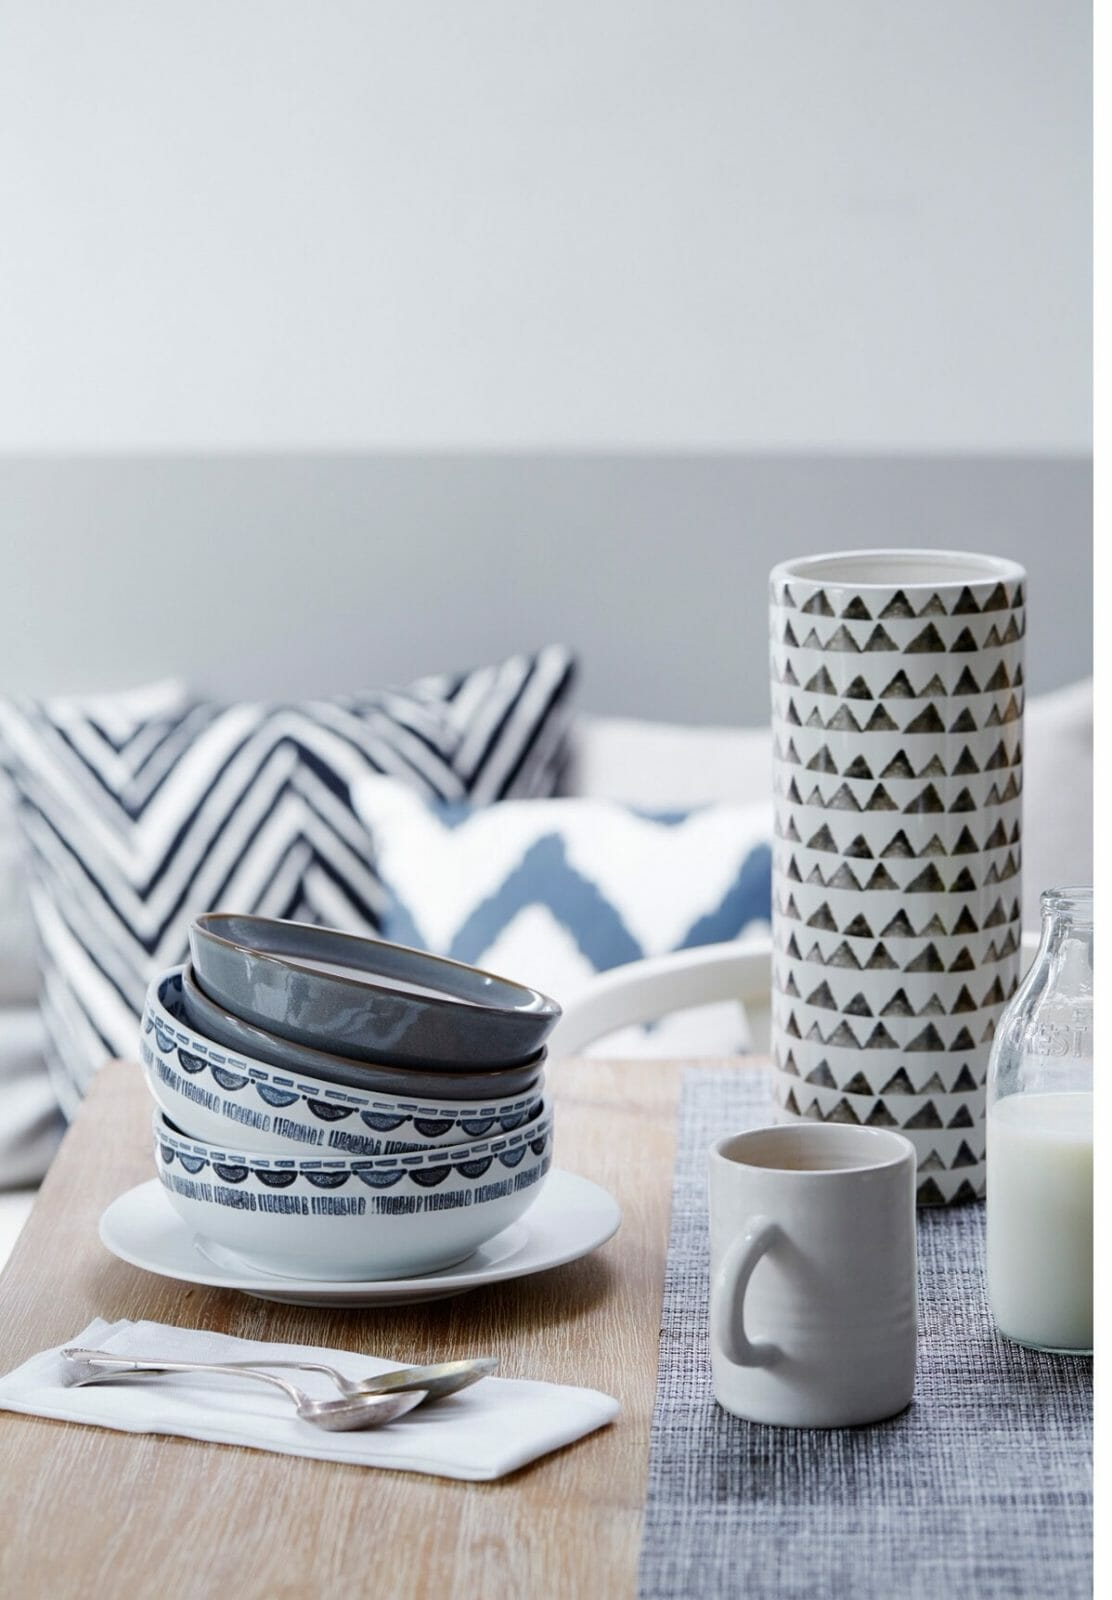 ikat, pippa jameson interiors, brent darby, patterned china, dining rooms, chevron cushions, ikat vase, Layer up your Monochrome and Ikat chinaware for a calm and contemporary dining room